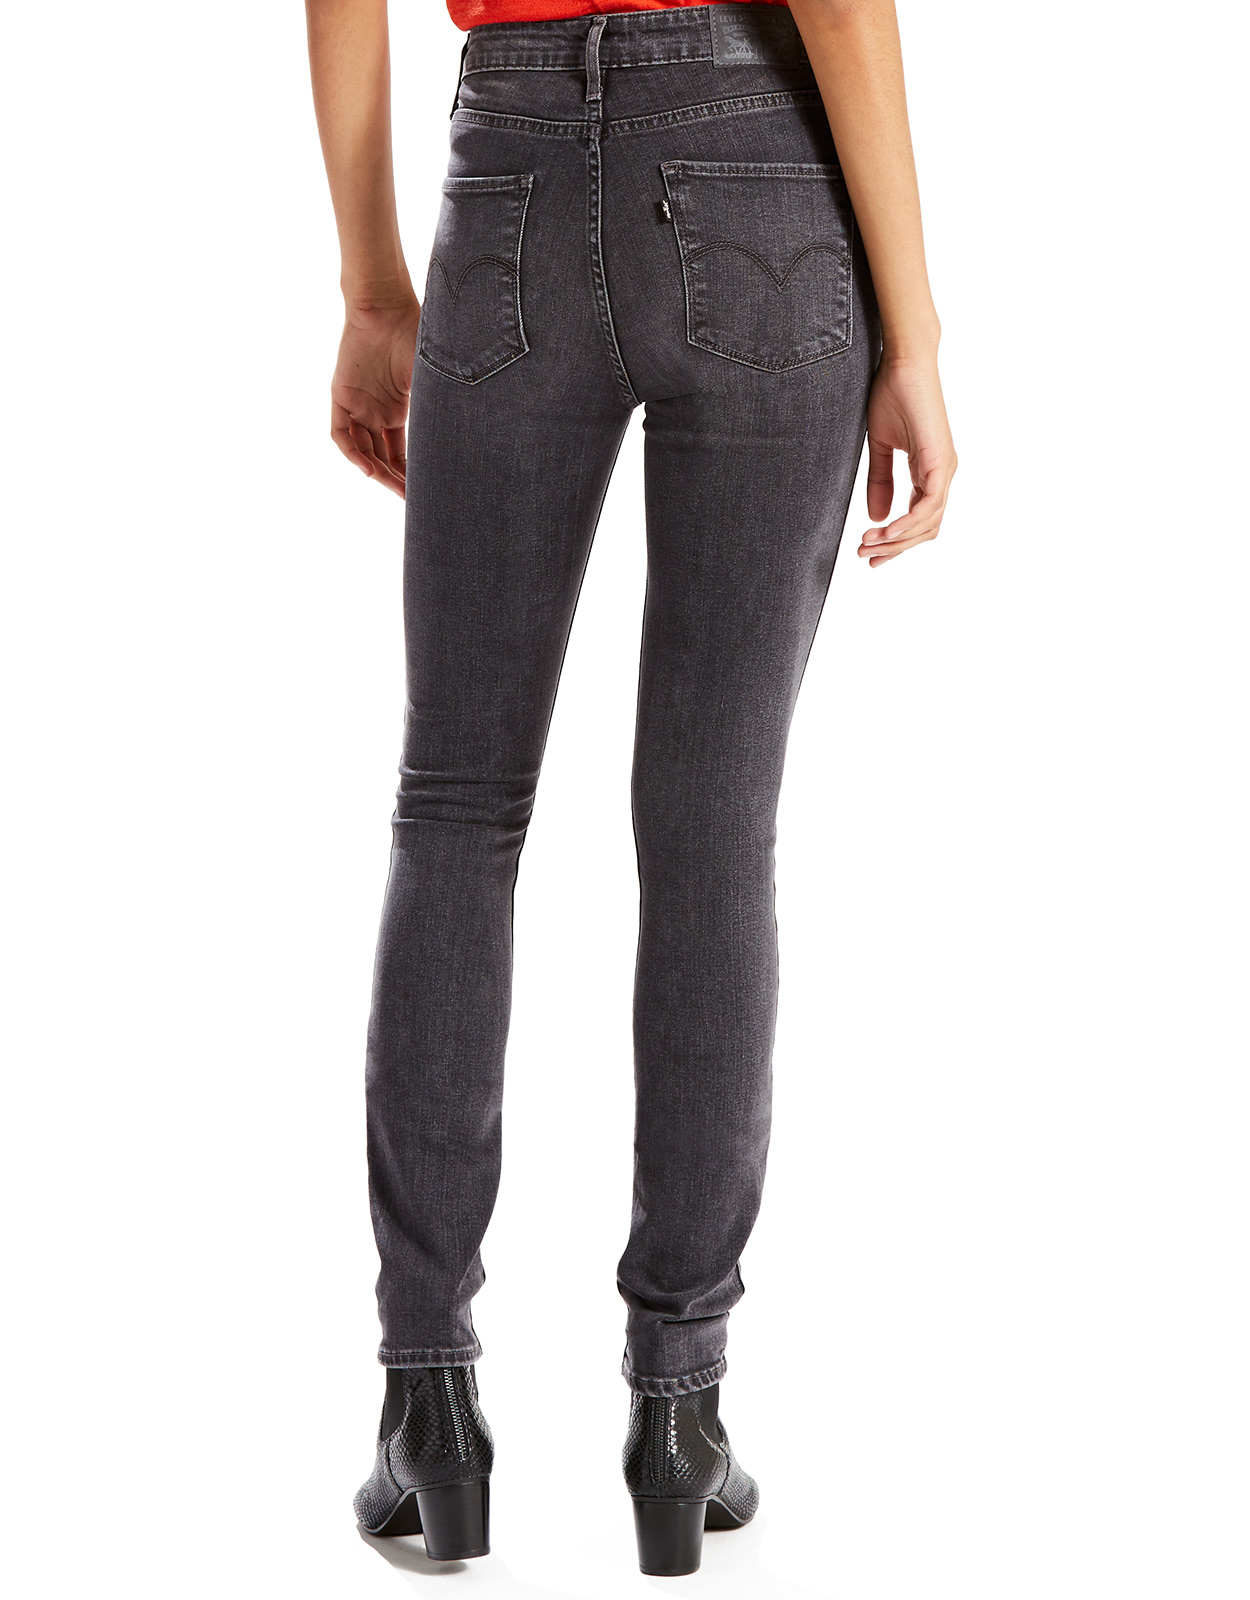 a2f347b36acc3 Levi s Women s 721 High Rise Skinny Jean - Grey Game